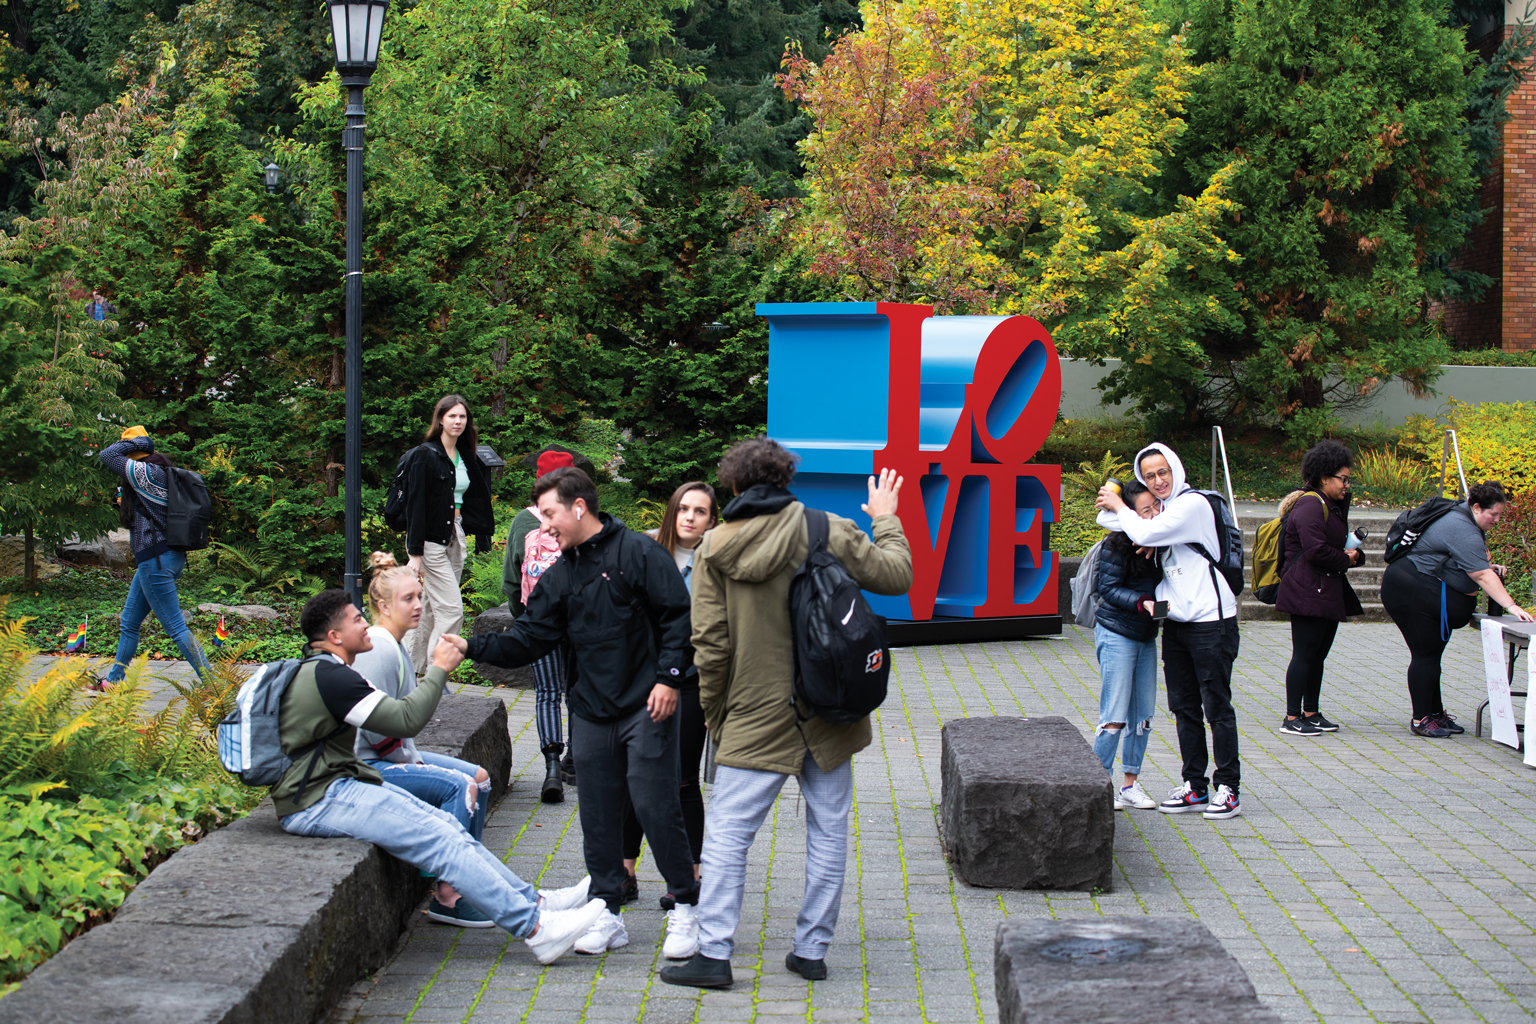 Students mingle outside J.R. Howard Hall, where Robert Indiana's iconic LOVE sculpture is on di...